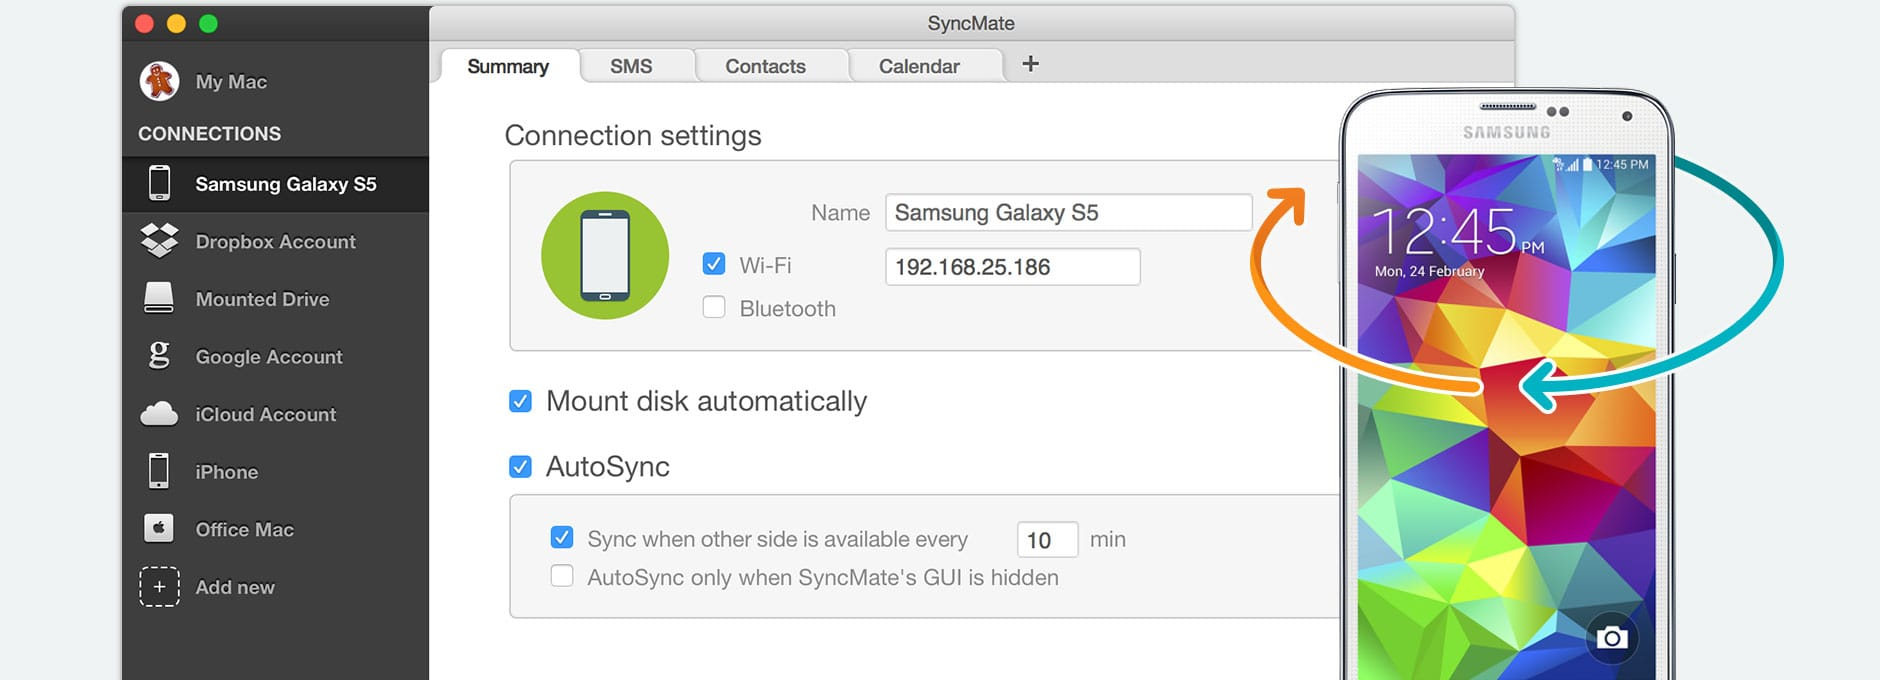 How to sync Android to Mac: Using Google services